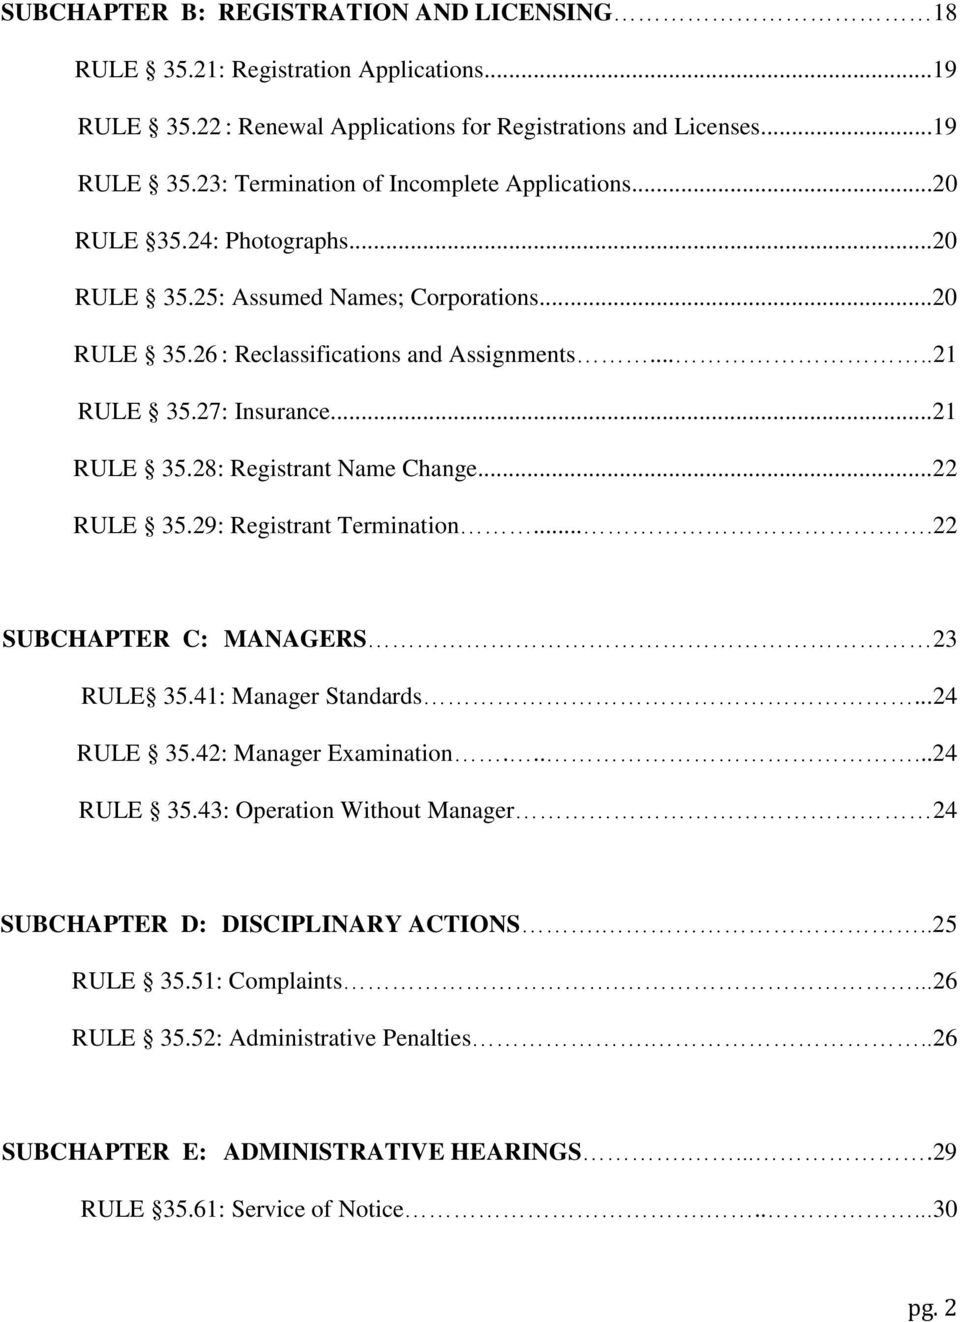 ..22 RULE 35.29: Registrant Termination....22 SUBCHAPTER C: MANAGERS 23 RULE 35.41: Manager Standards...24 RULE 35.42: Manager Examination......24 RULE 35.43: Operation Without Manager 24 SUBCHAPTER D: DISCIPLINARY ACTIONS.